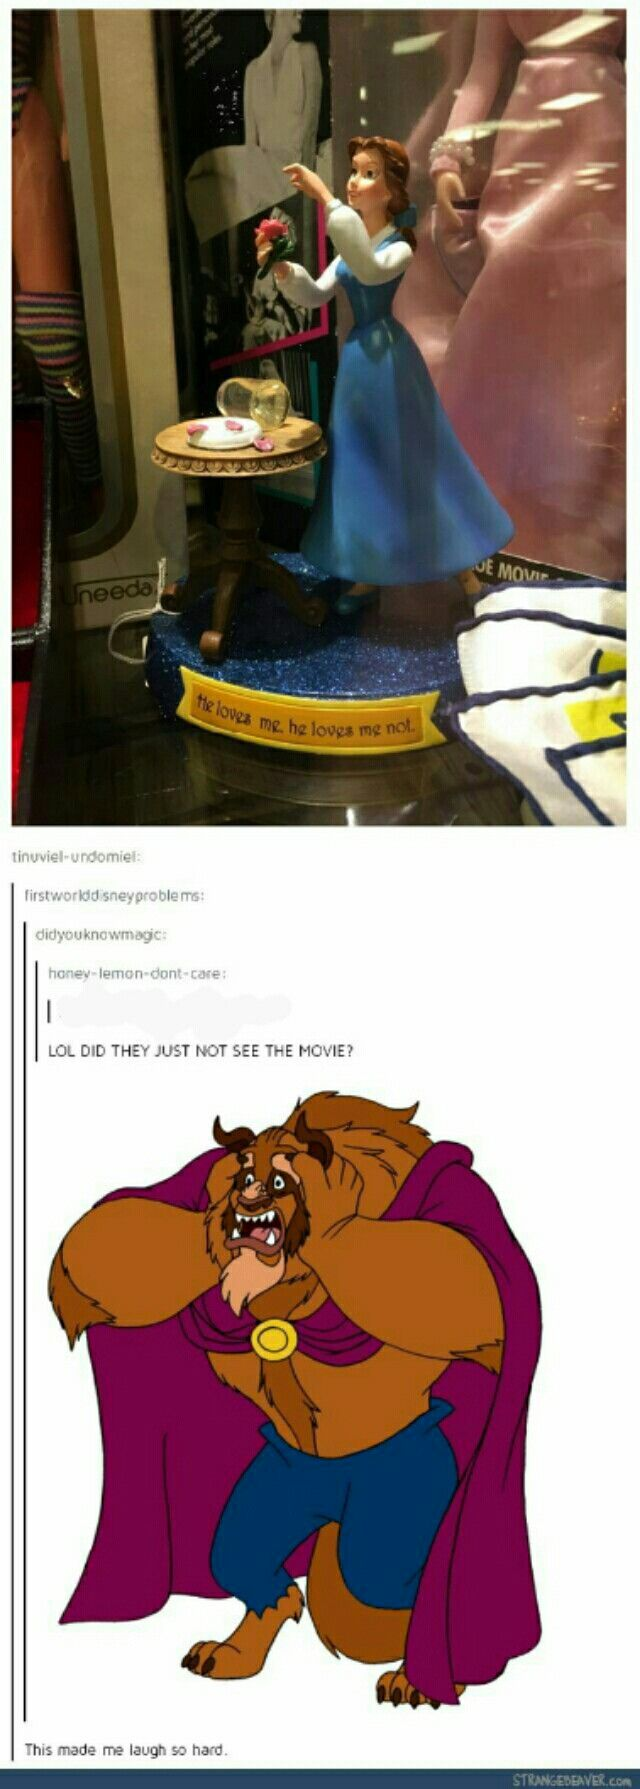 Yeah, that's not what Beauty and the Beast is about. Belle is so much more than that. I agree with the shock horror on the beast's face.